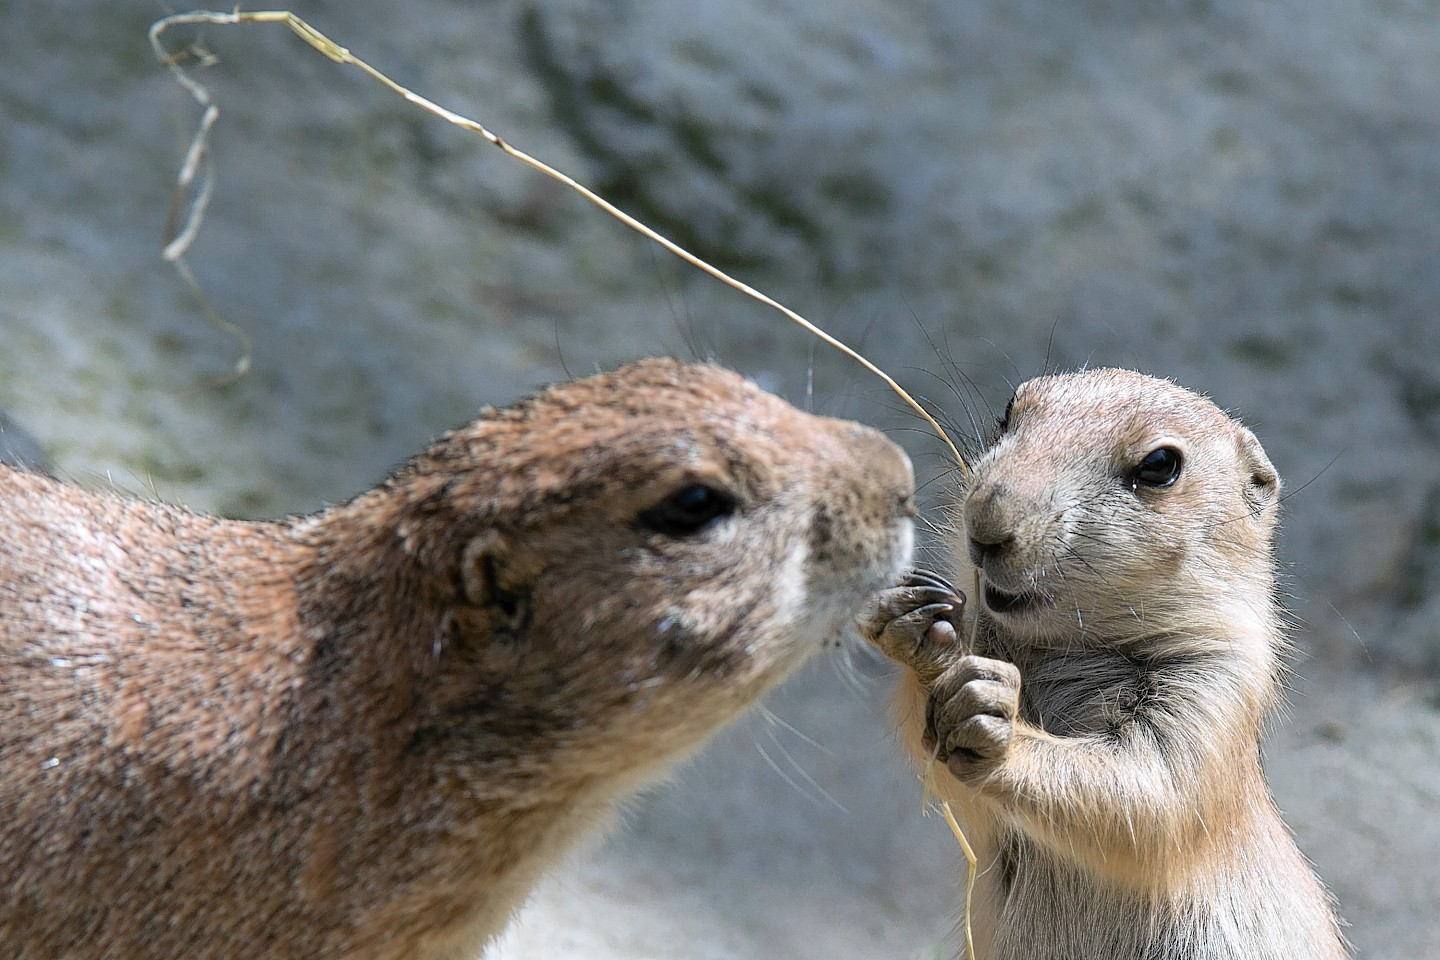 A prairie dog offspring and a parent play in their enclosure at the zoo in Hanover, Germany